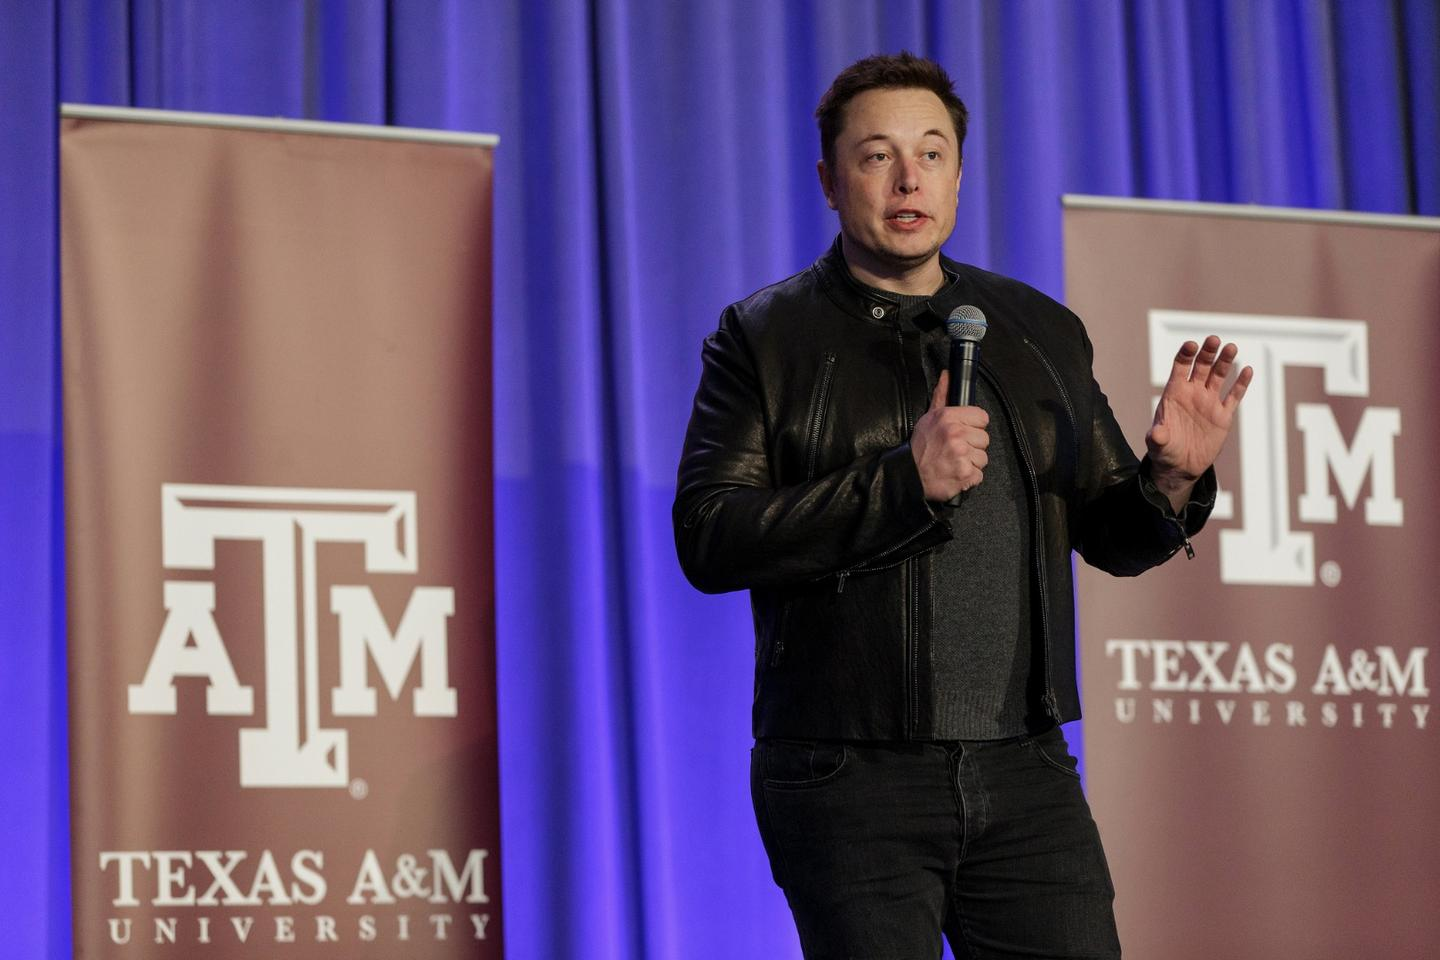 SpaceX itself is not developing the Hyperloop, first imagined by Elon Musk in a 2013 white paper, but it is very much encouraging anyone and everyone to pursue the idea on their own